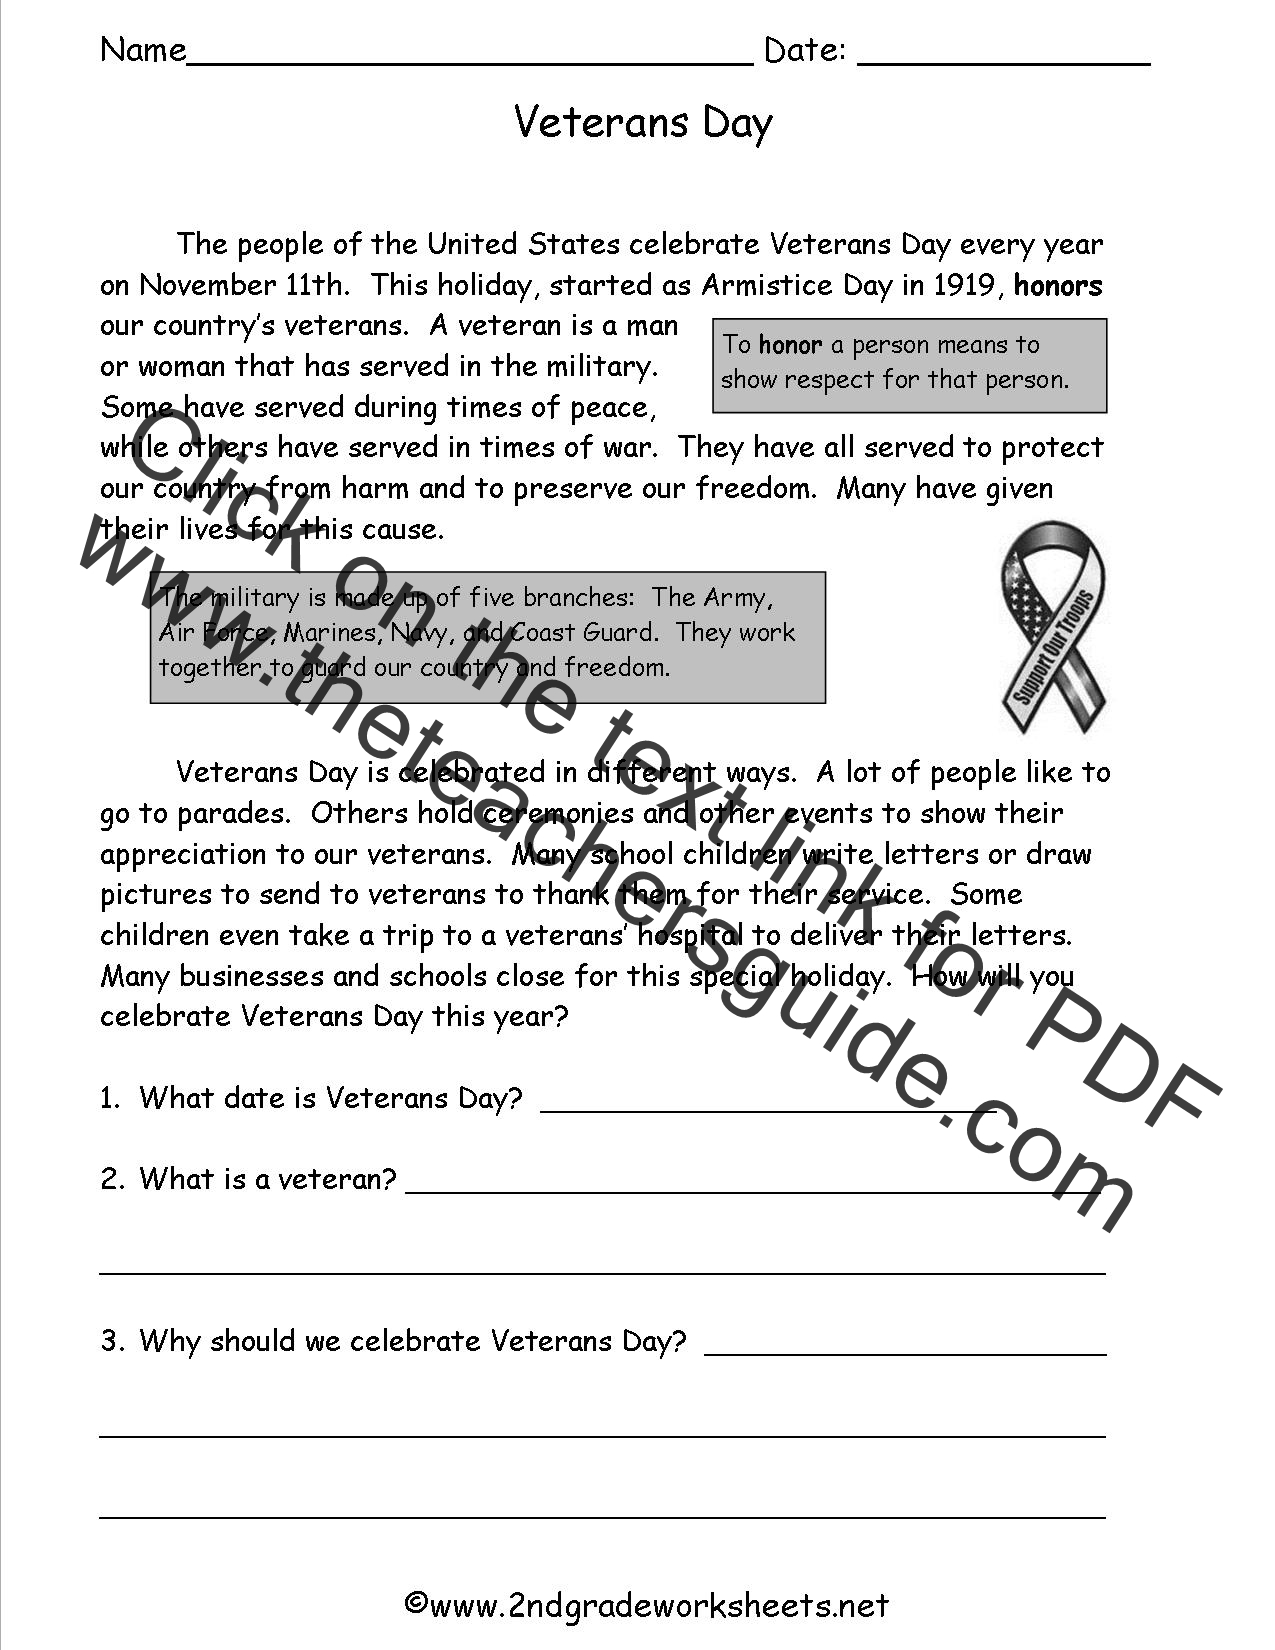 Worksheet Veterans Day Worksheets veterans day worksheets worksheets